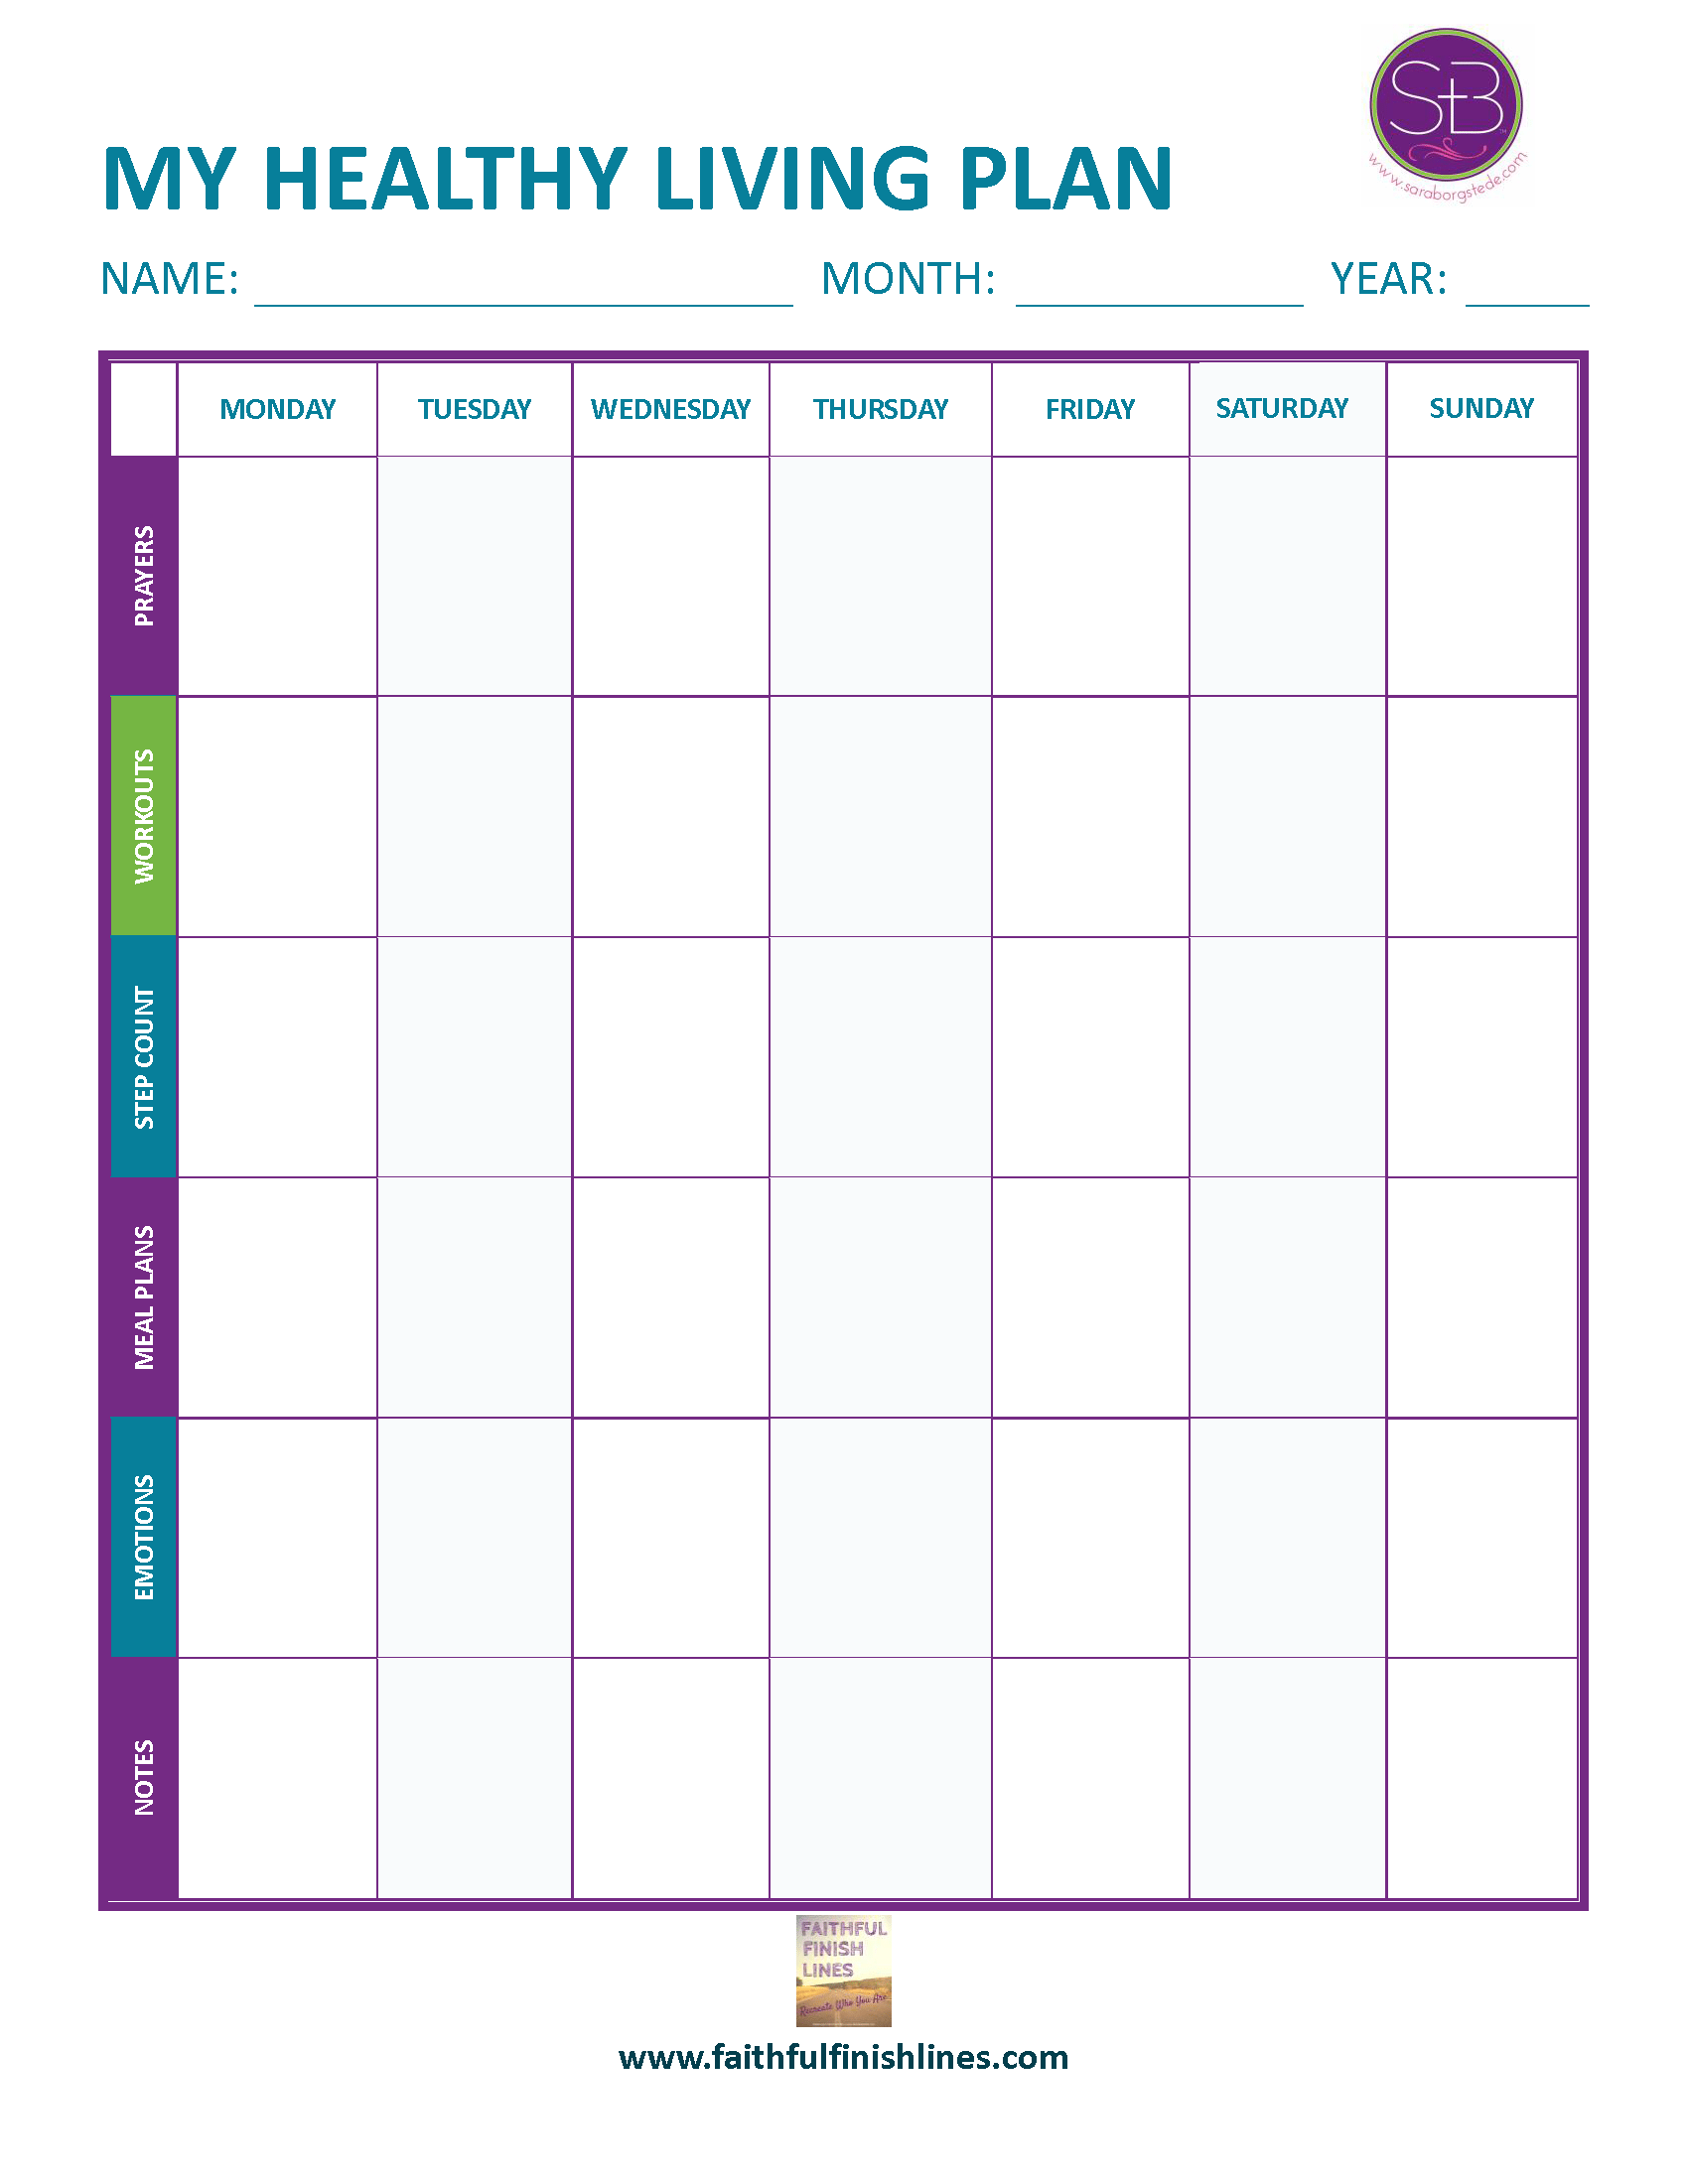 My Healthy Living Plan — Get Organized!